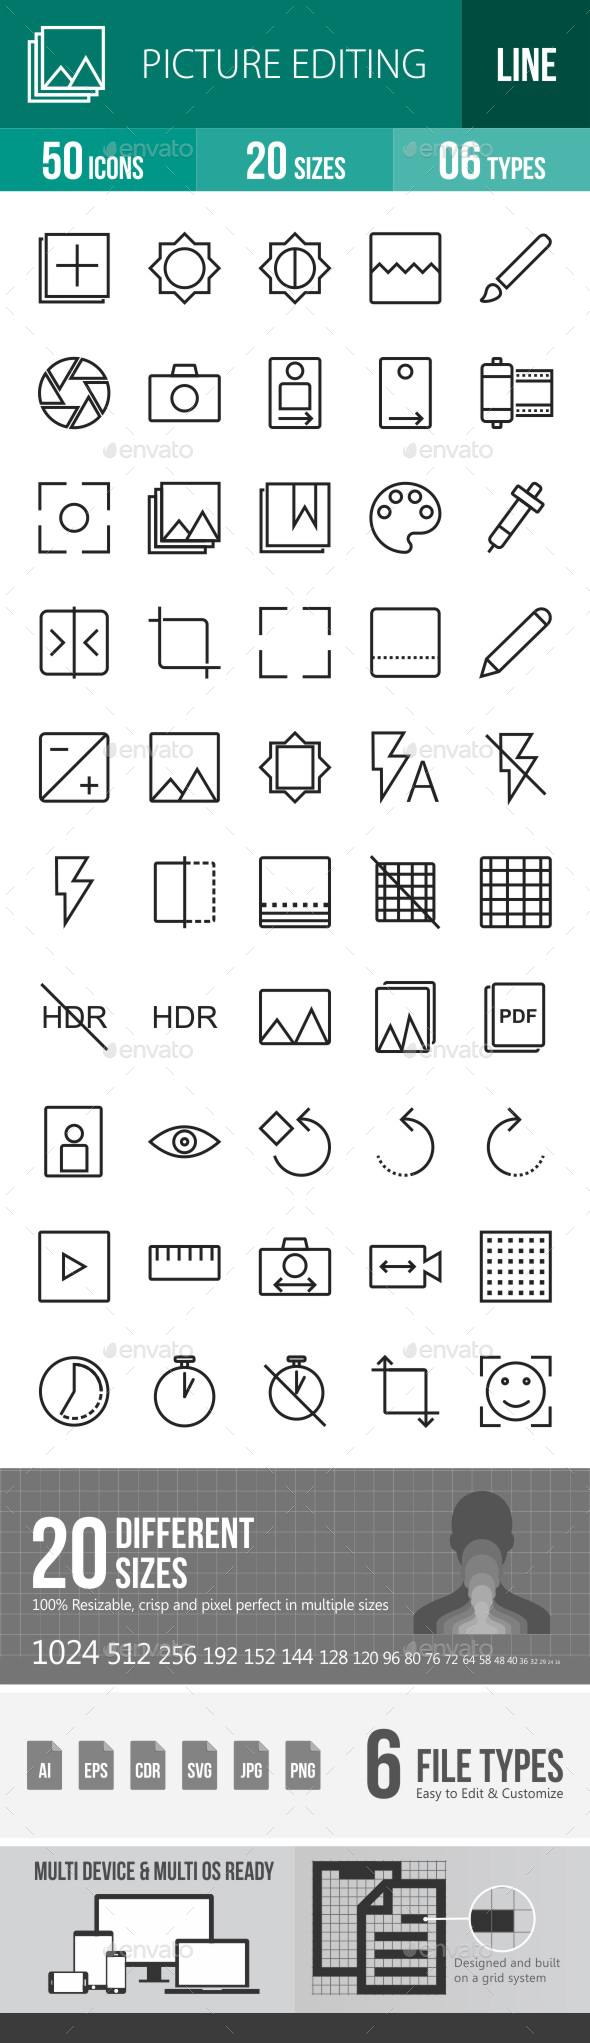 Picture Editing Line Icons - Icons